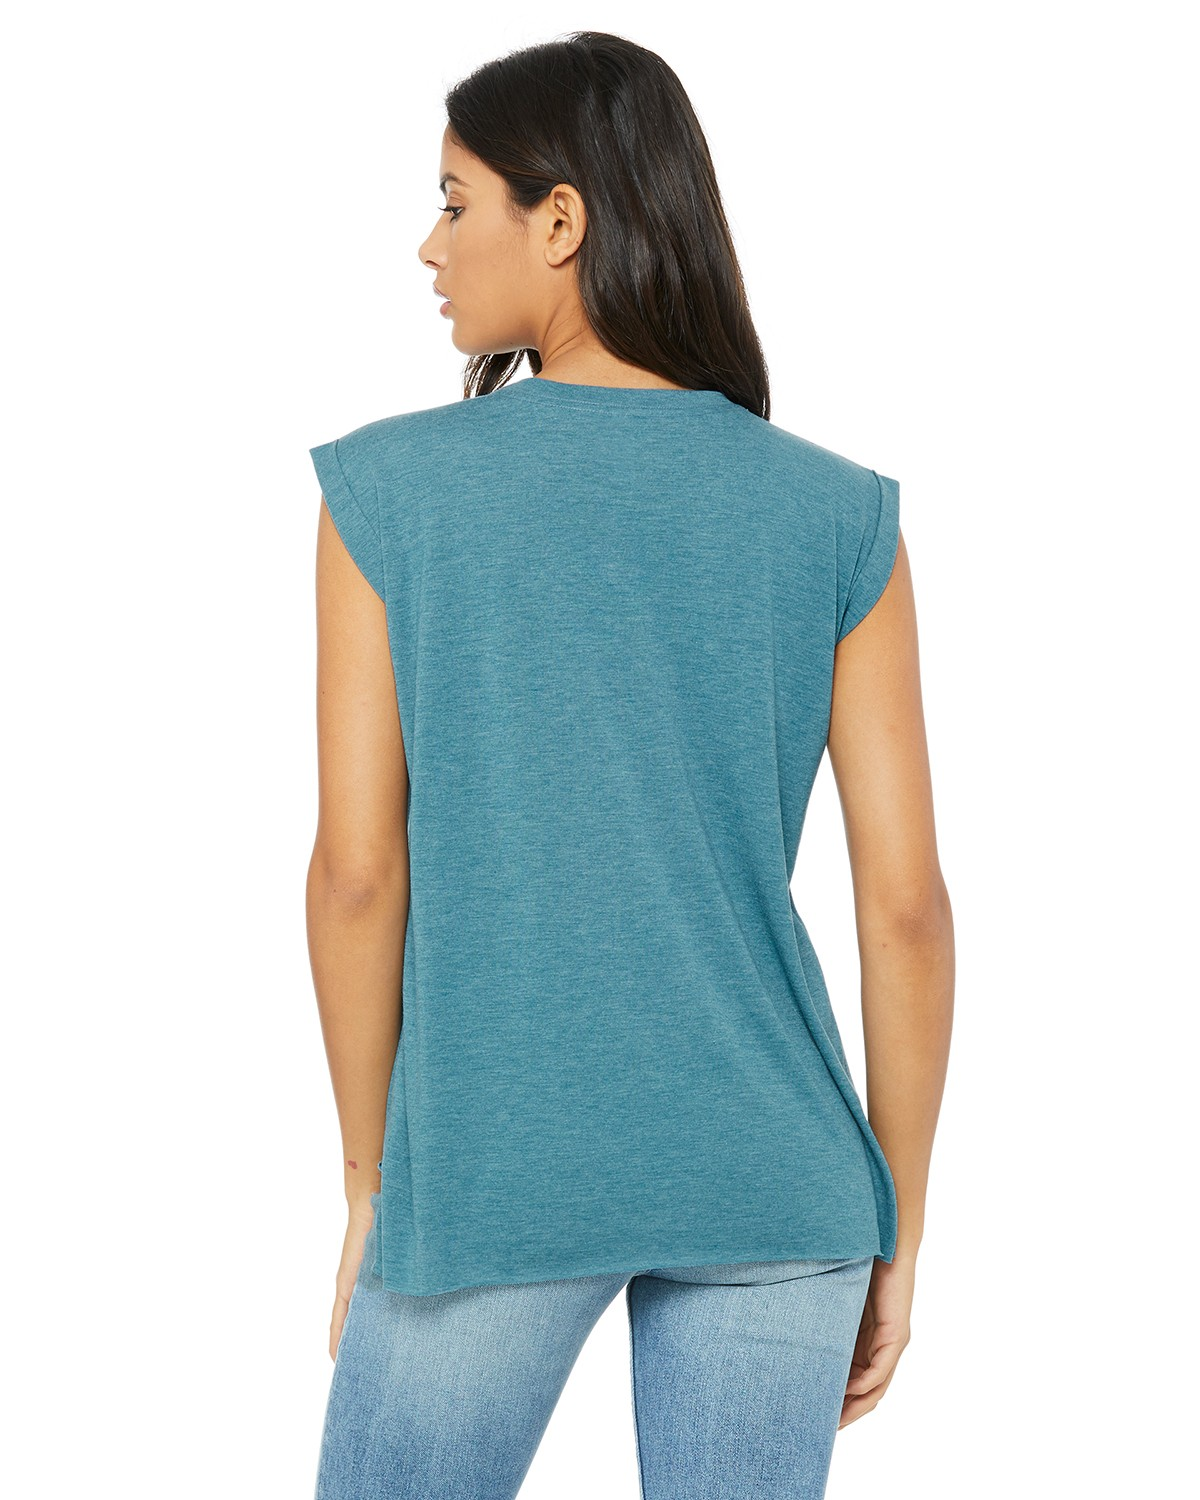 8804 Bella + Canvas HTHR DEEP TEAL